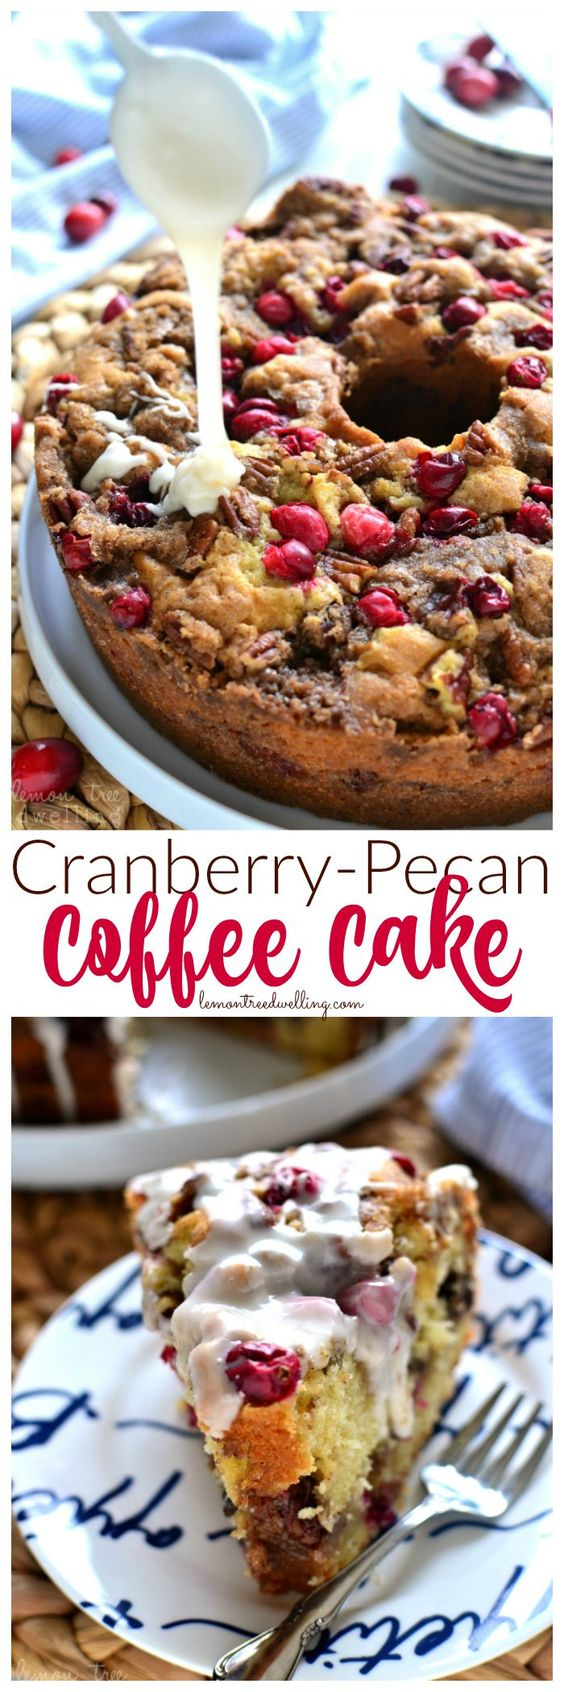 Cranberry-Pecan Coffee Cake is packed with fresh cranberries, pecans ...